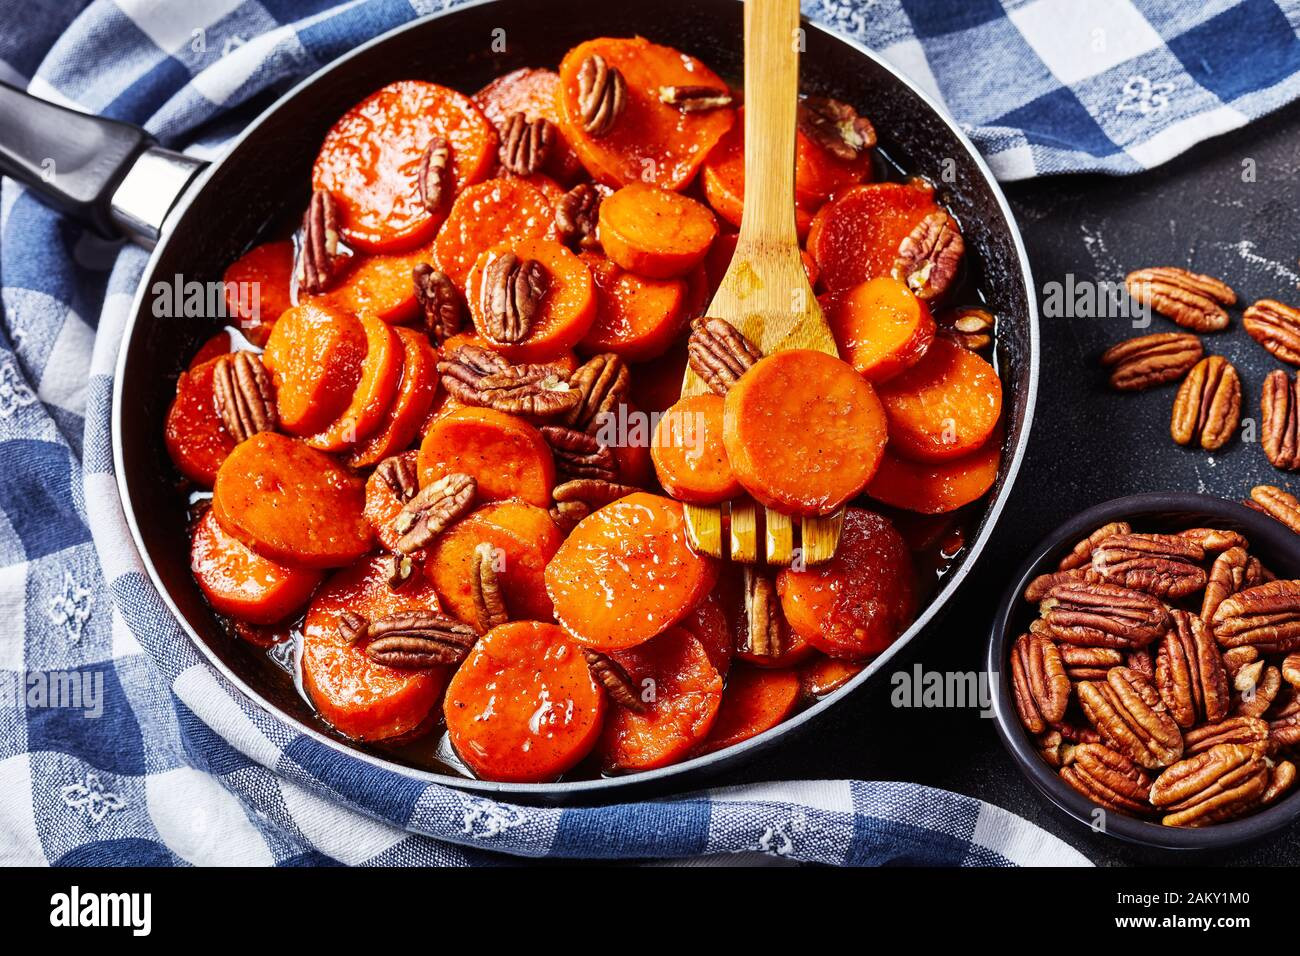 Candied sweet potatoes with brown sugar, maple syrup, orange juice and pecan nuts in a skillet on a concrete table with a kitchen towel, view from abo Stock Photo